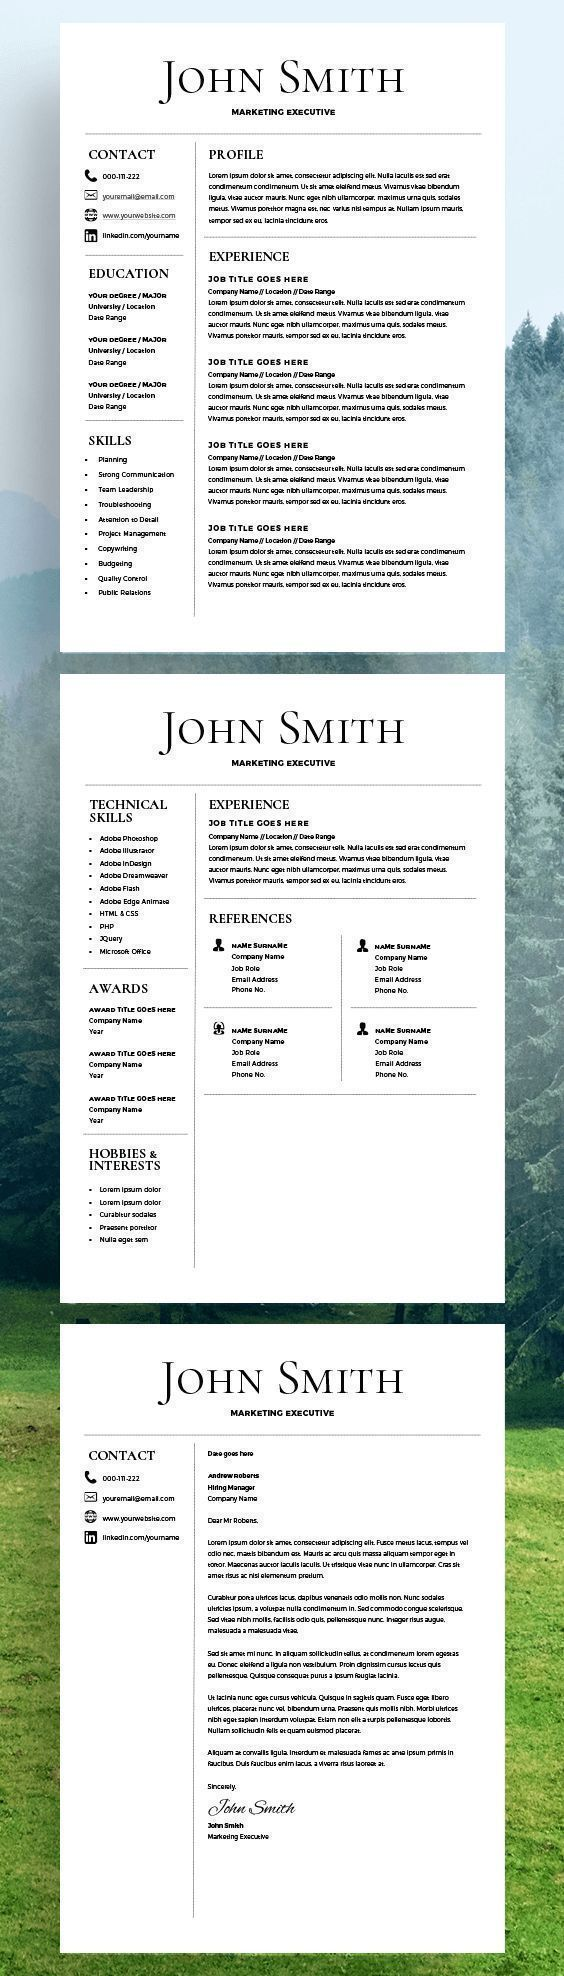 Resume Template - CV Template - Free Cover Letter - MS Word on Mac ...